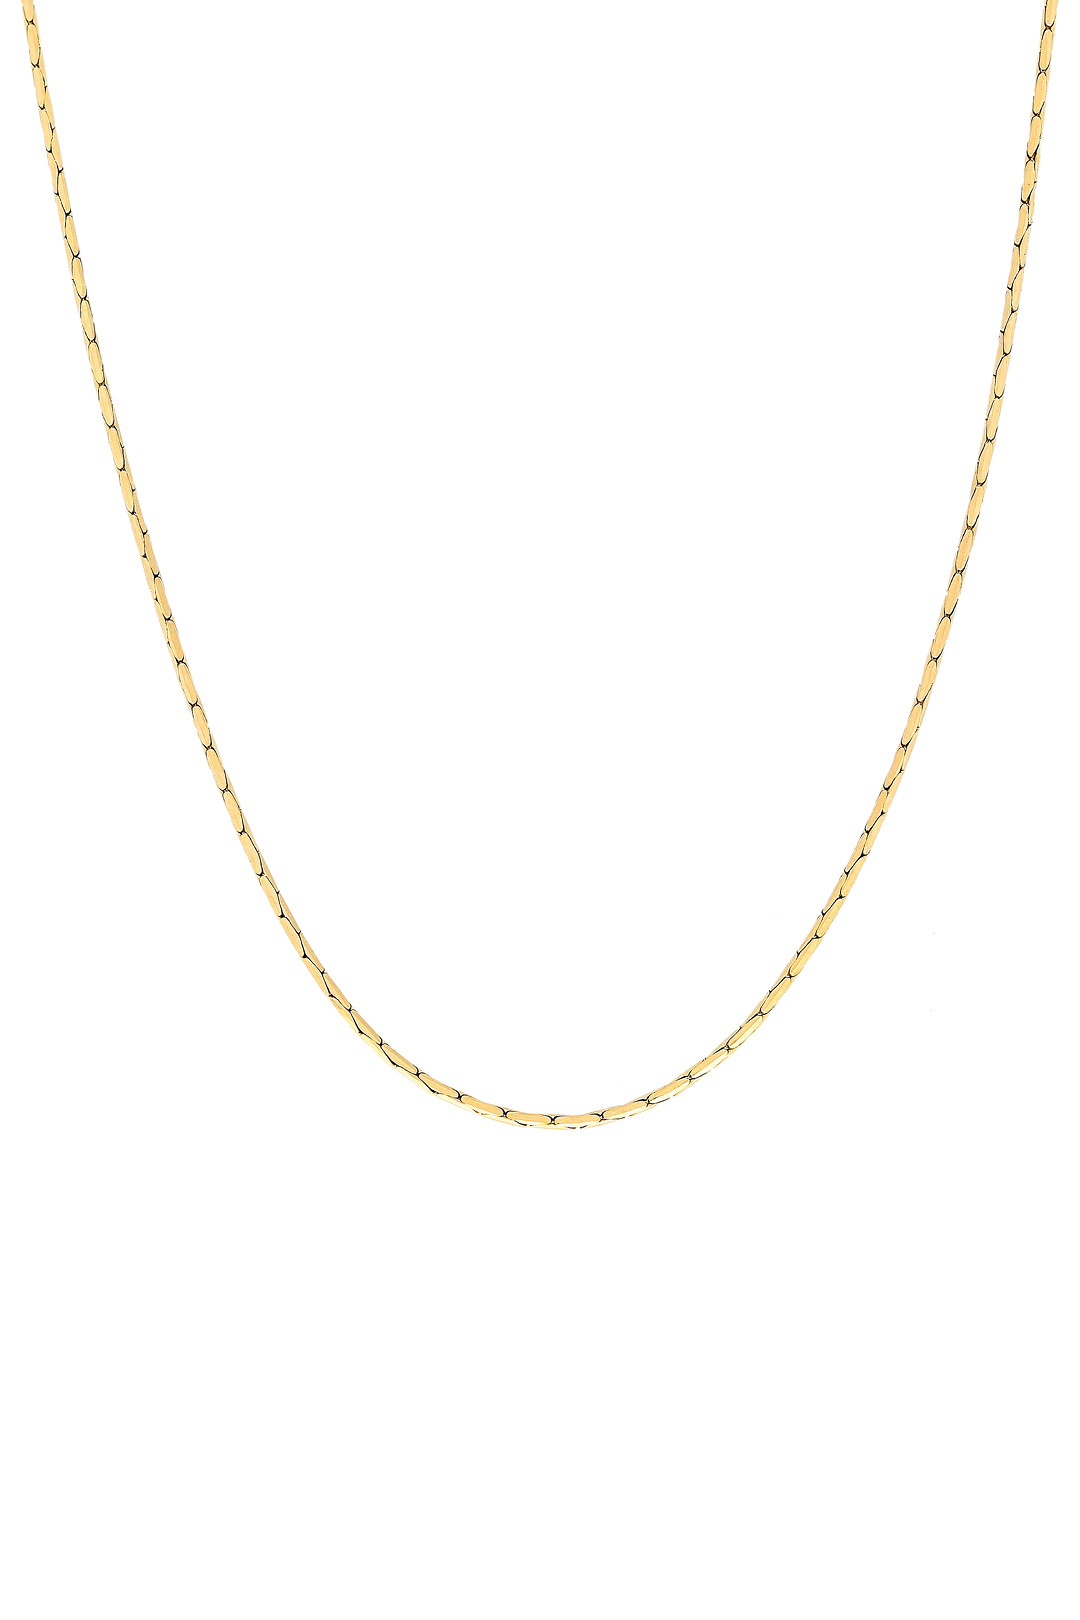 PLAIN RETRO CHAIN NECKLACE